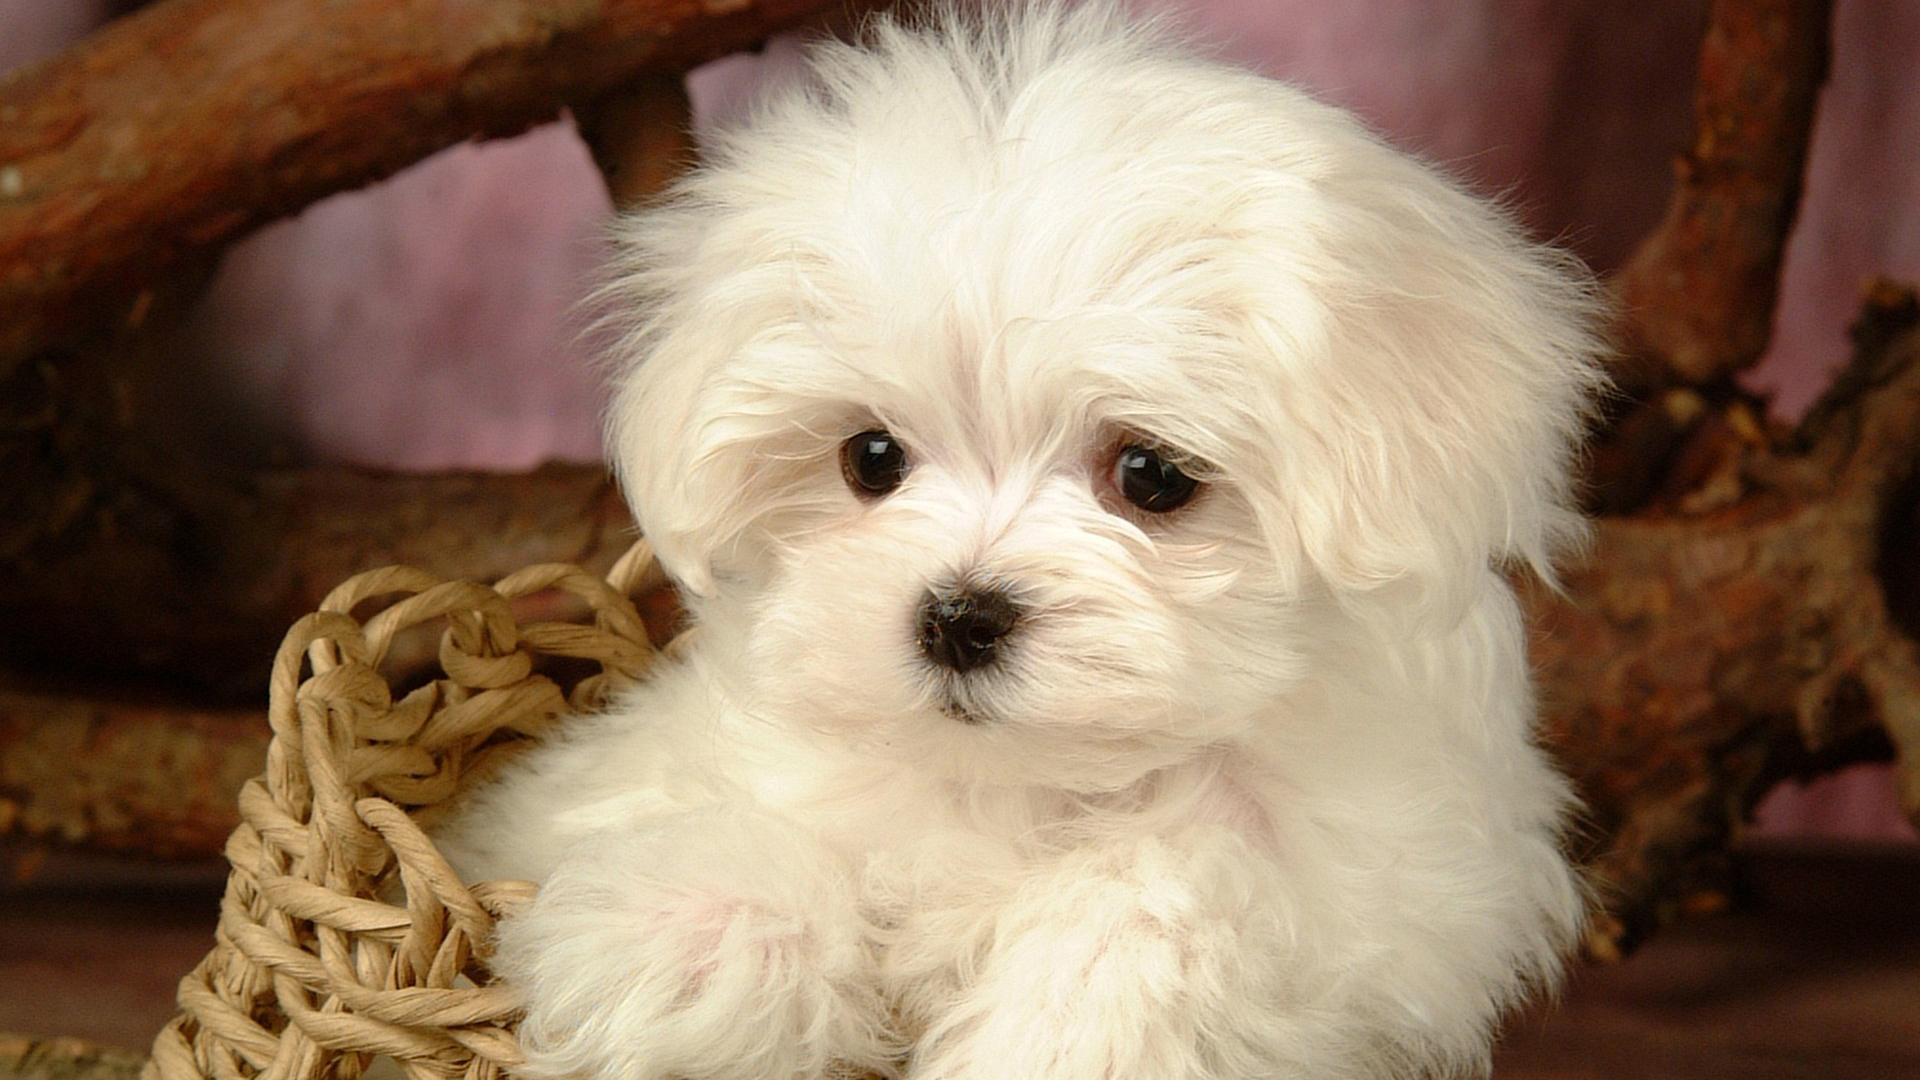 Cute dog hd wallpapers for girls desktop wallpaper 1920x1080